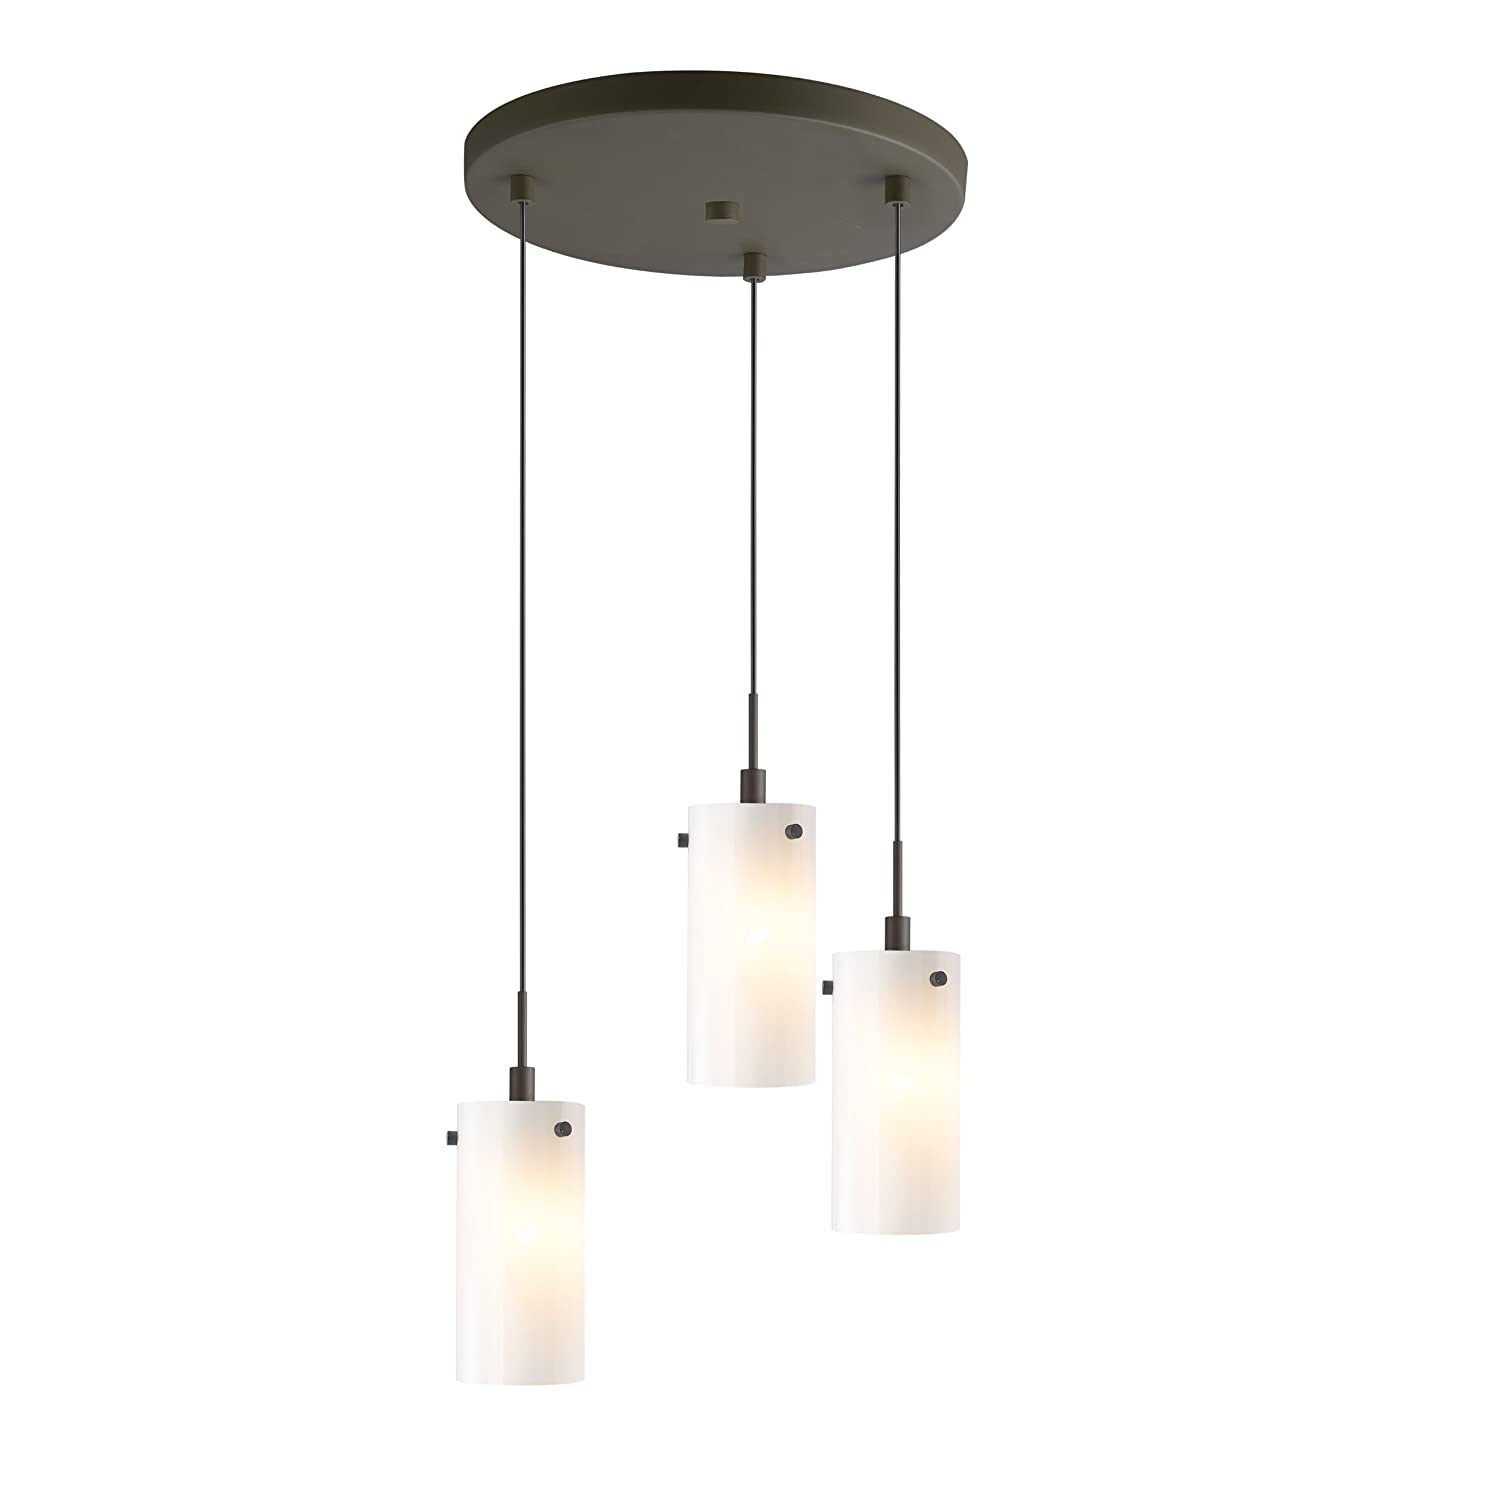 troy item magnifying bronze inch in multi lighting outter image shown wide pendant cfm banks shipyard light glass finish